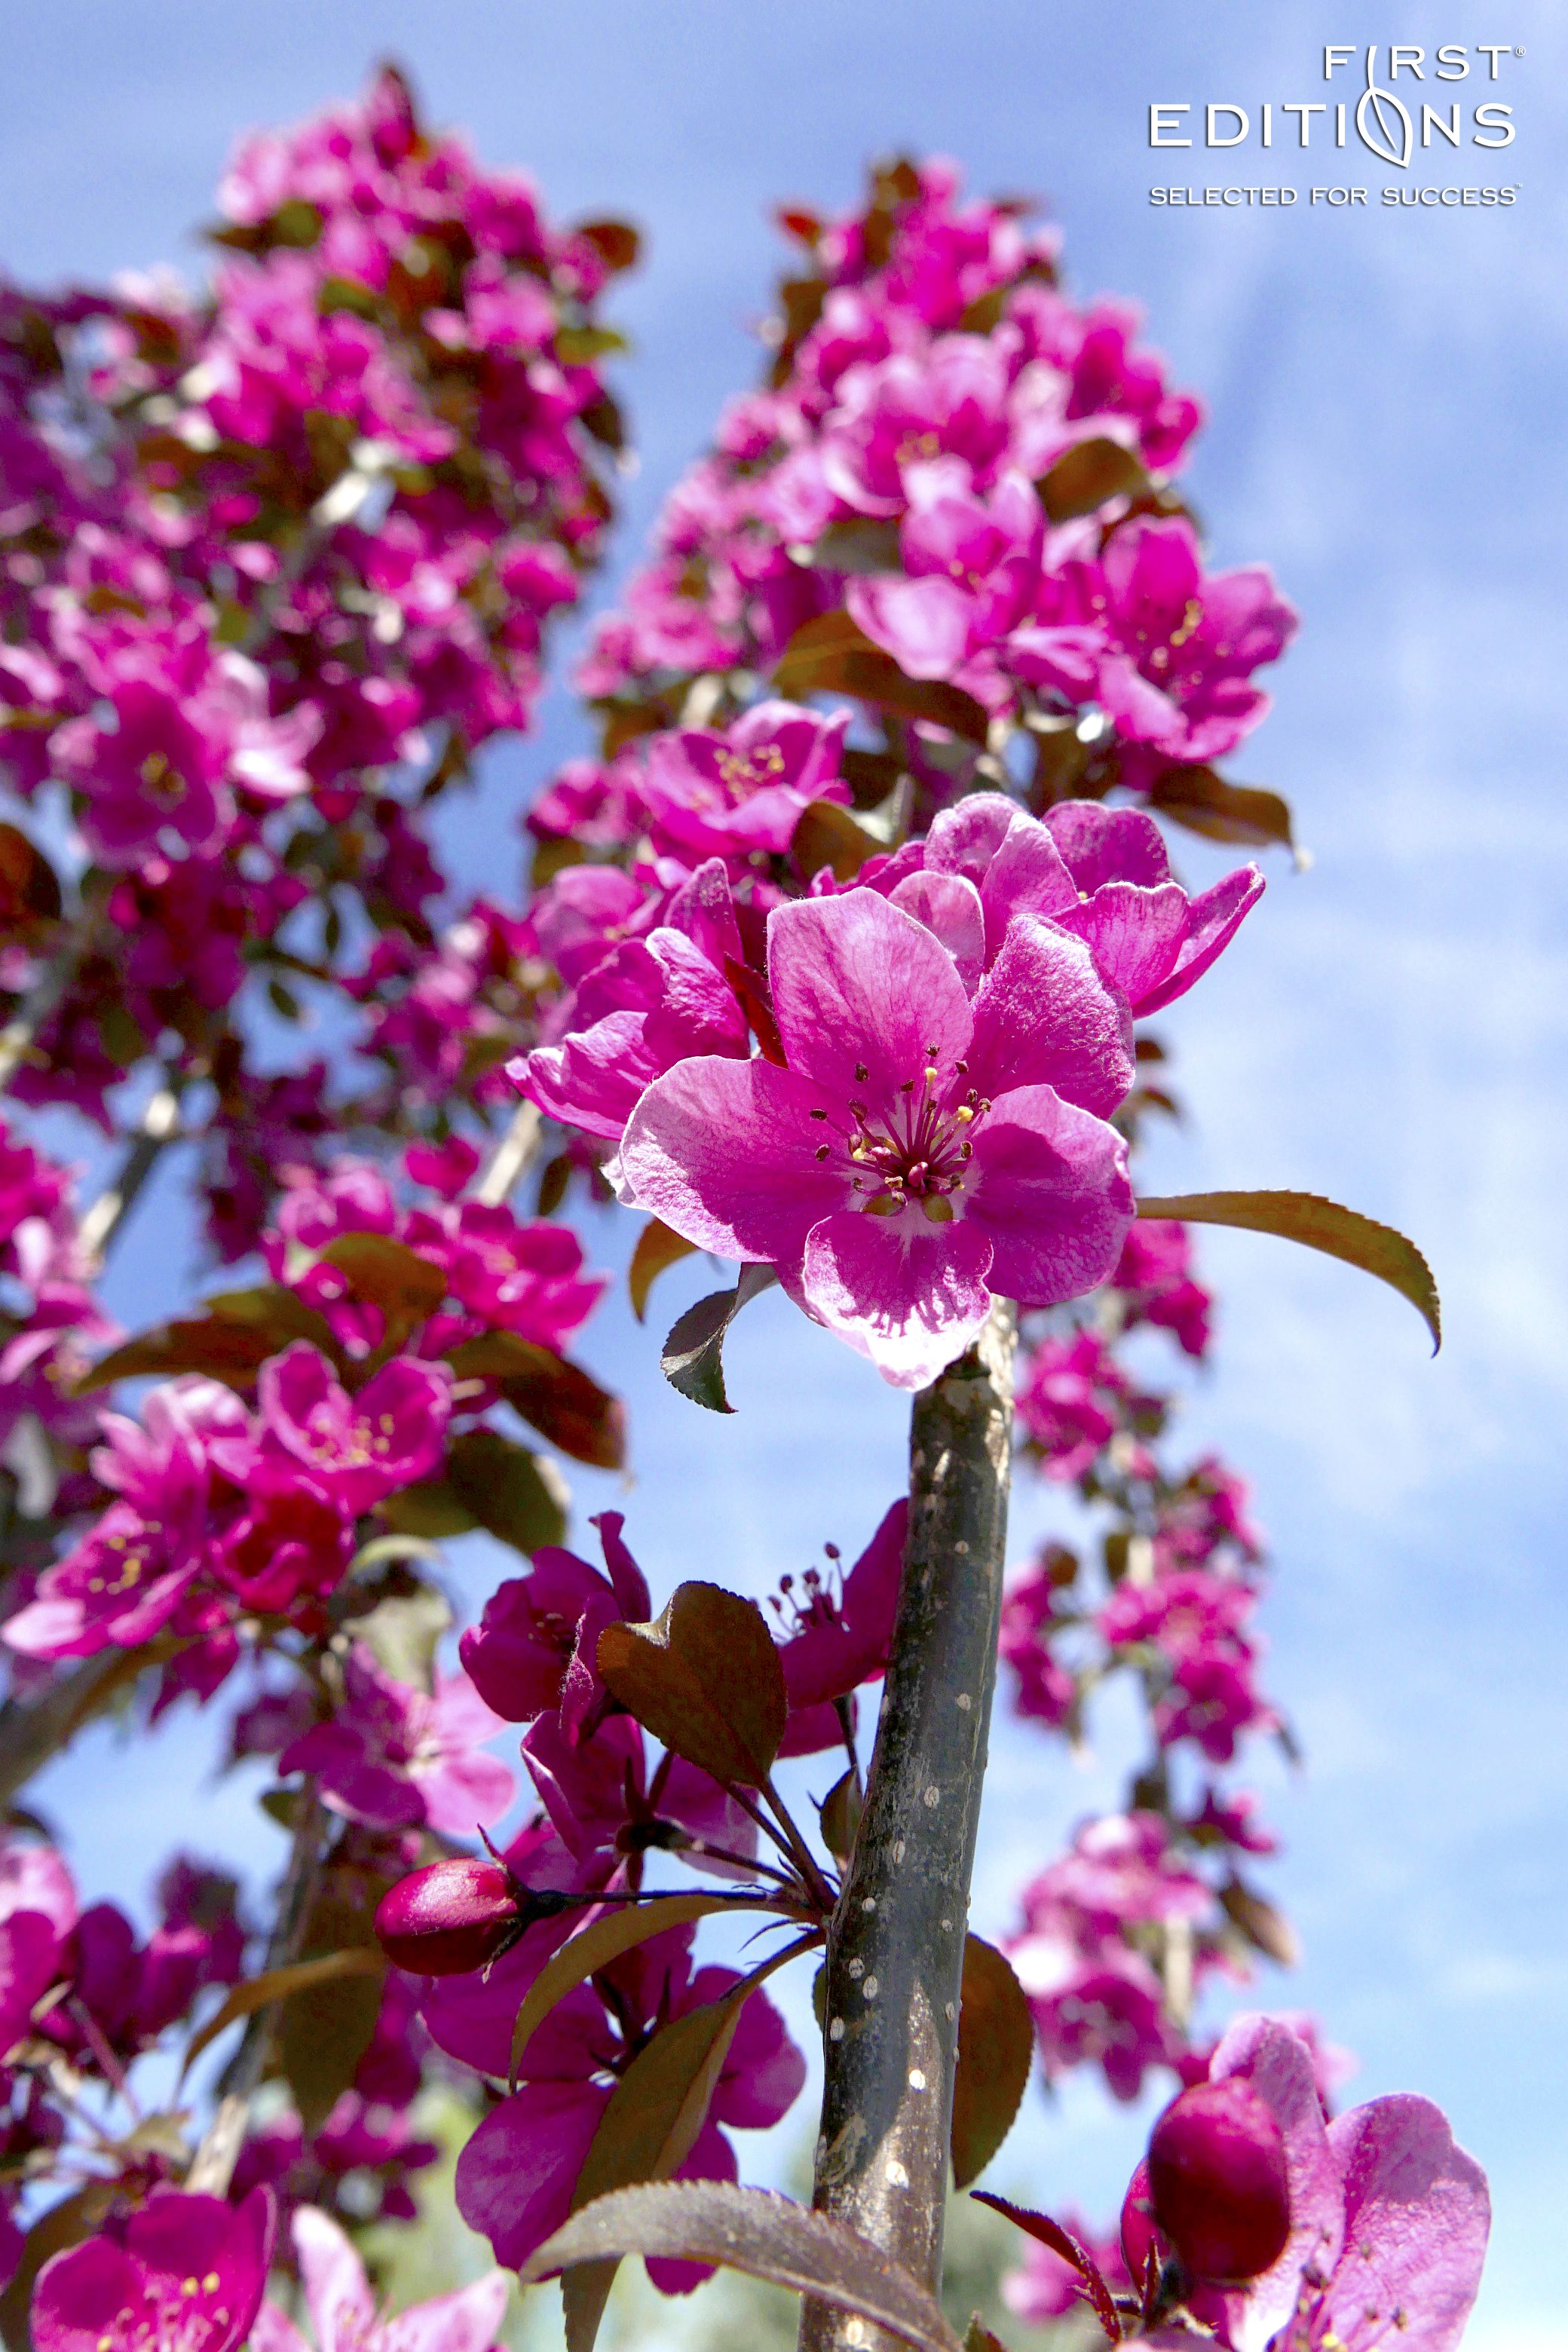 Gladiator is an excellent ornamental crabapple tree that is ideal gladiator is an excellent ornamental crabapple tree that is ideal for small space gardens it has bright pink flowers accented by glossy bronze purple mightylinksfo